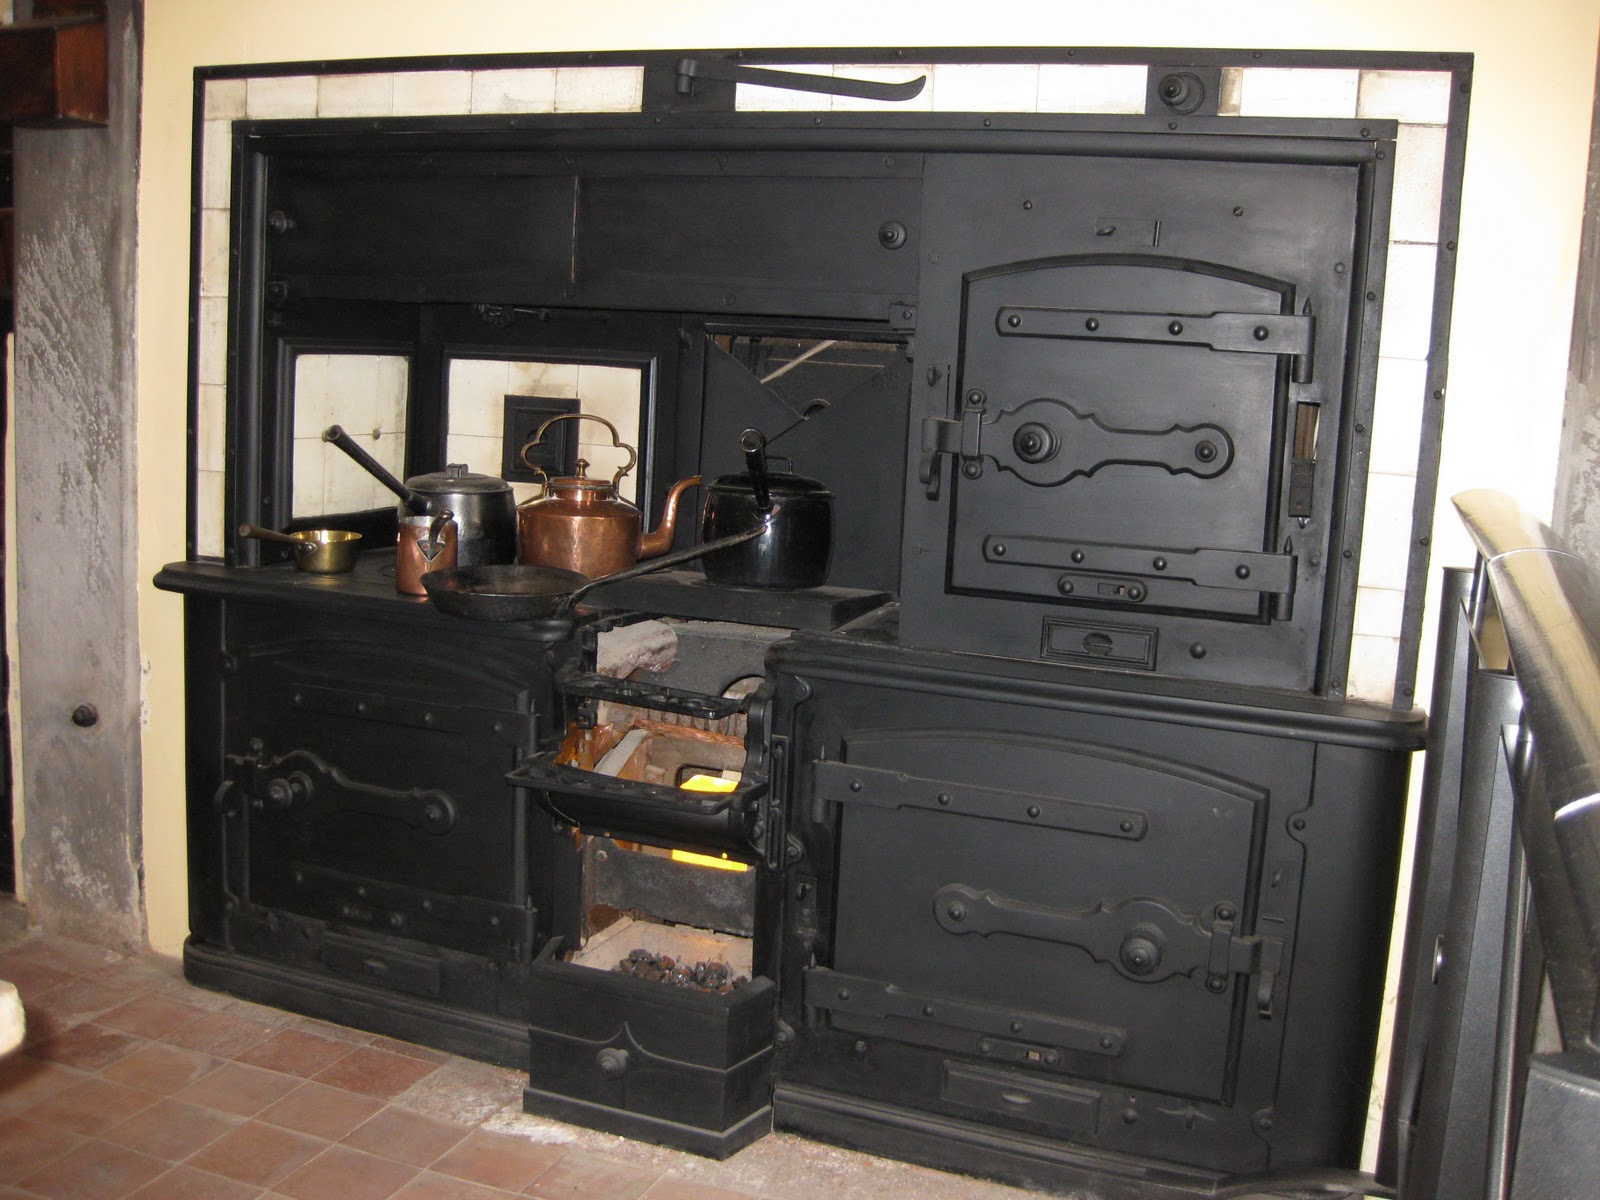 House Home Garden Original Victorian Kitchen Range